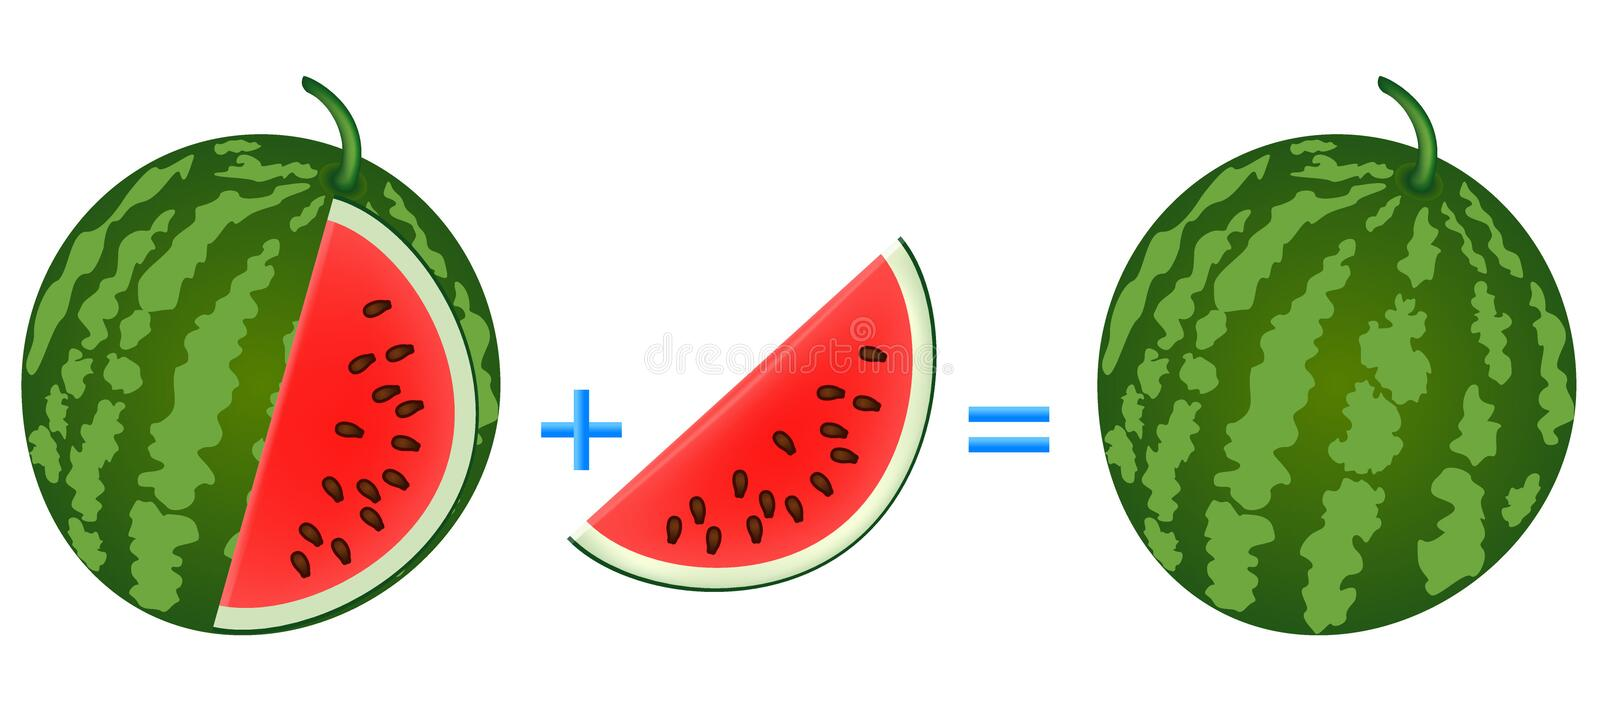 Action relationship of addition, examples with watermelon. Educational game for children. Action relationship of addition, examples with watermelon. Educational royalty free illustration